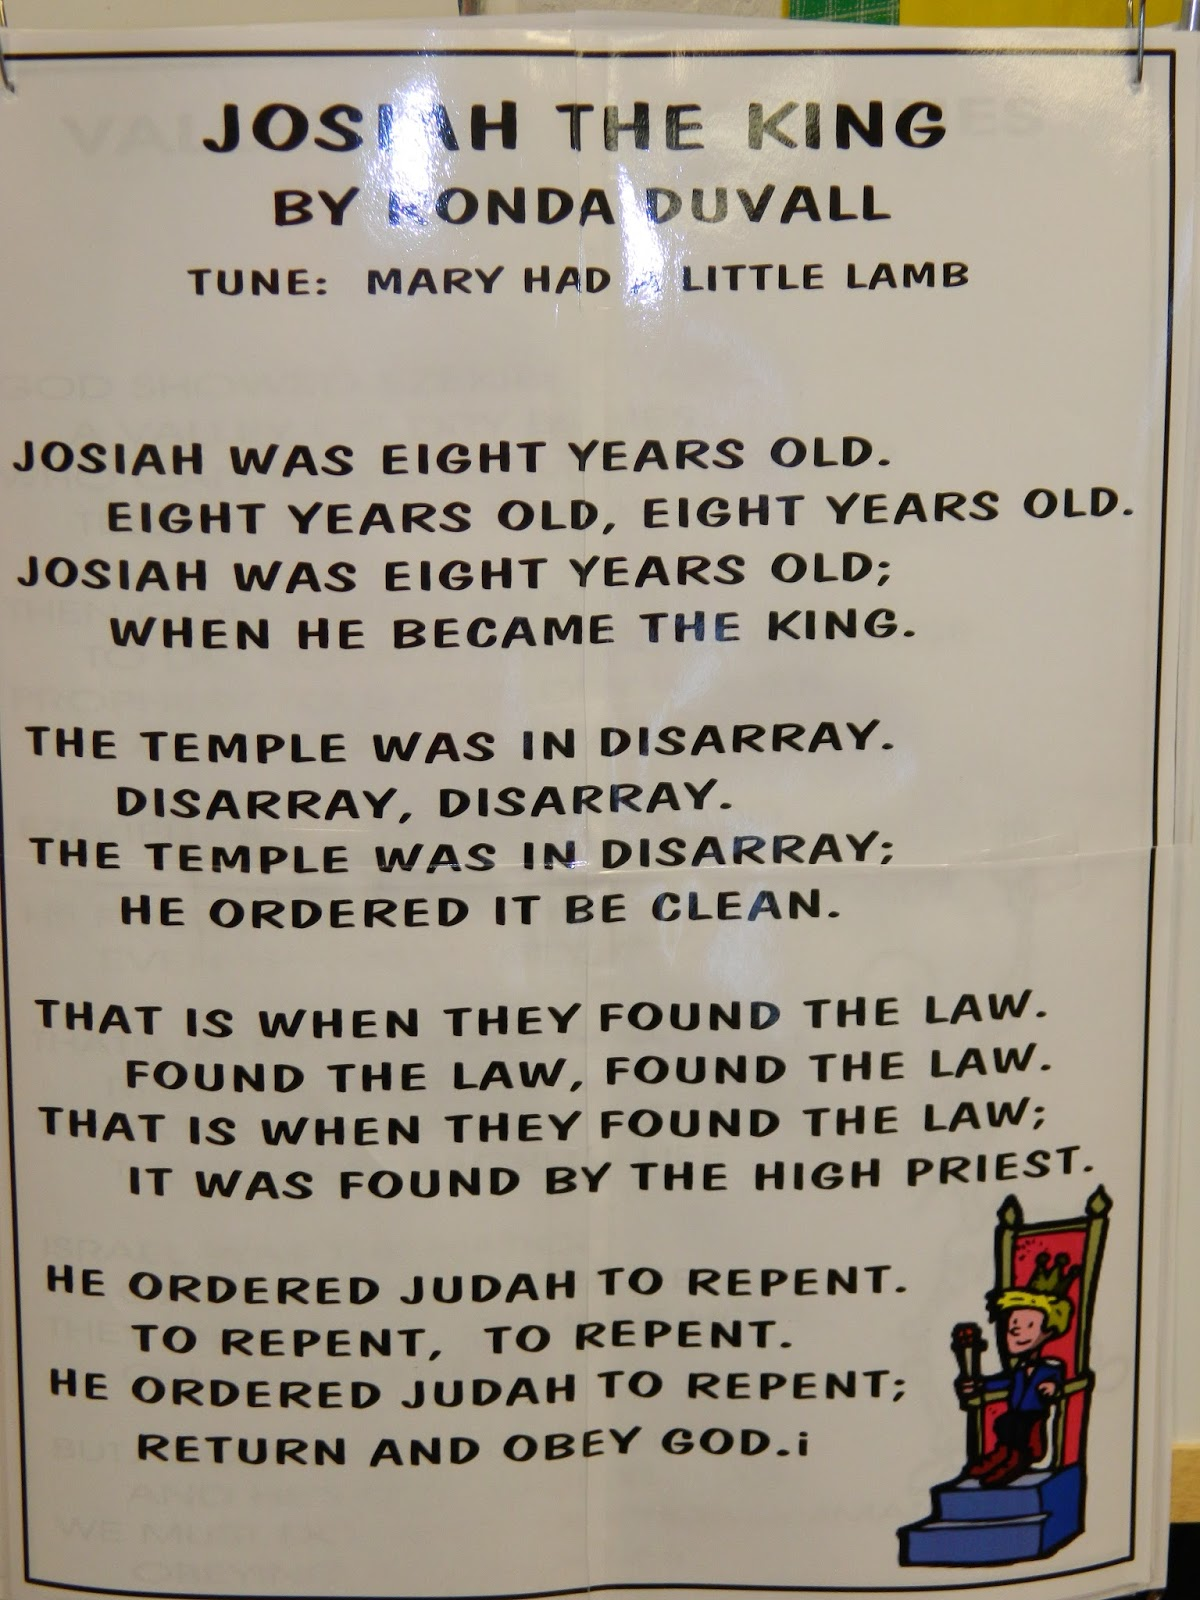 Bible lesson josiah finds the law of the lord - Bible Lesson Josiah Finds The Law Of The Lord 2